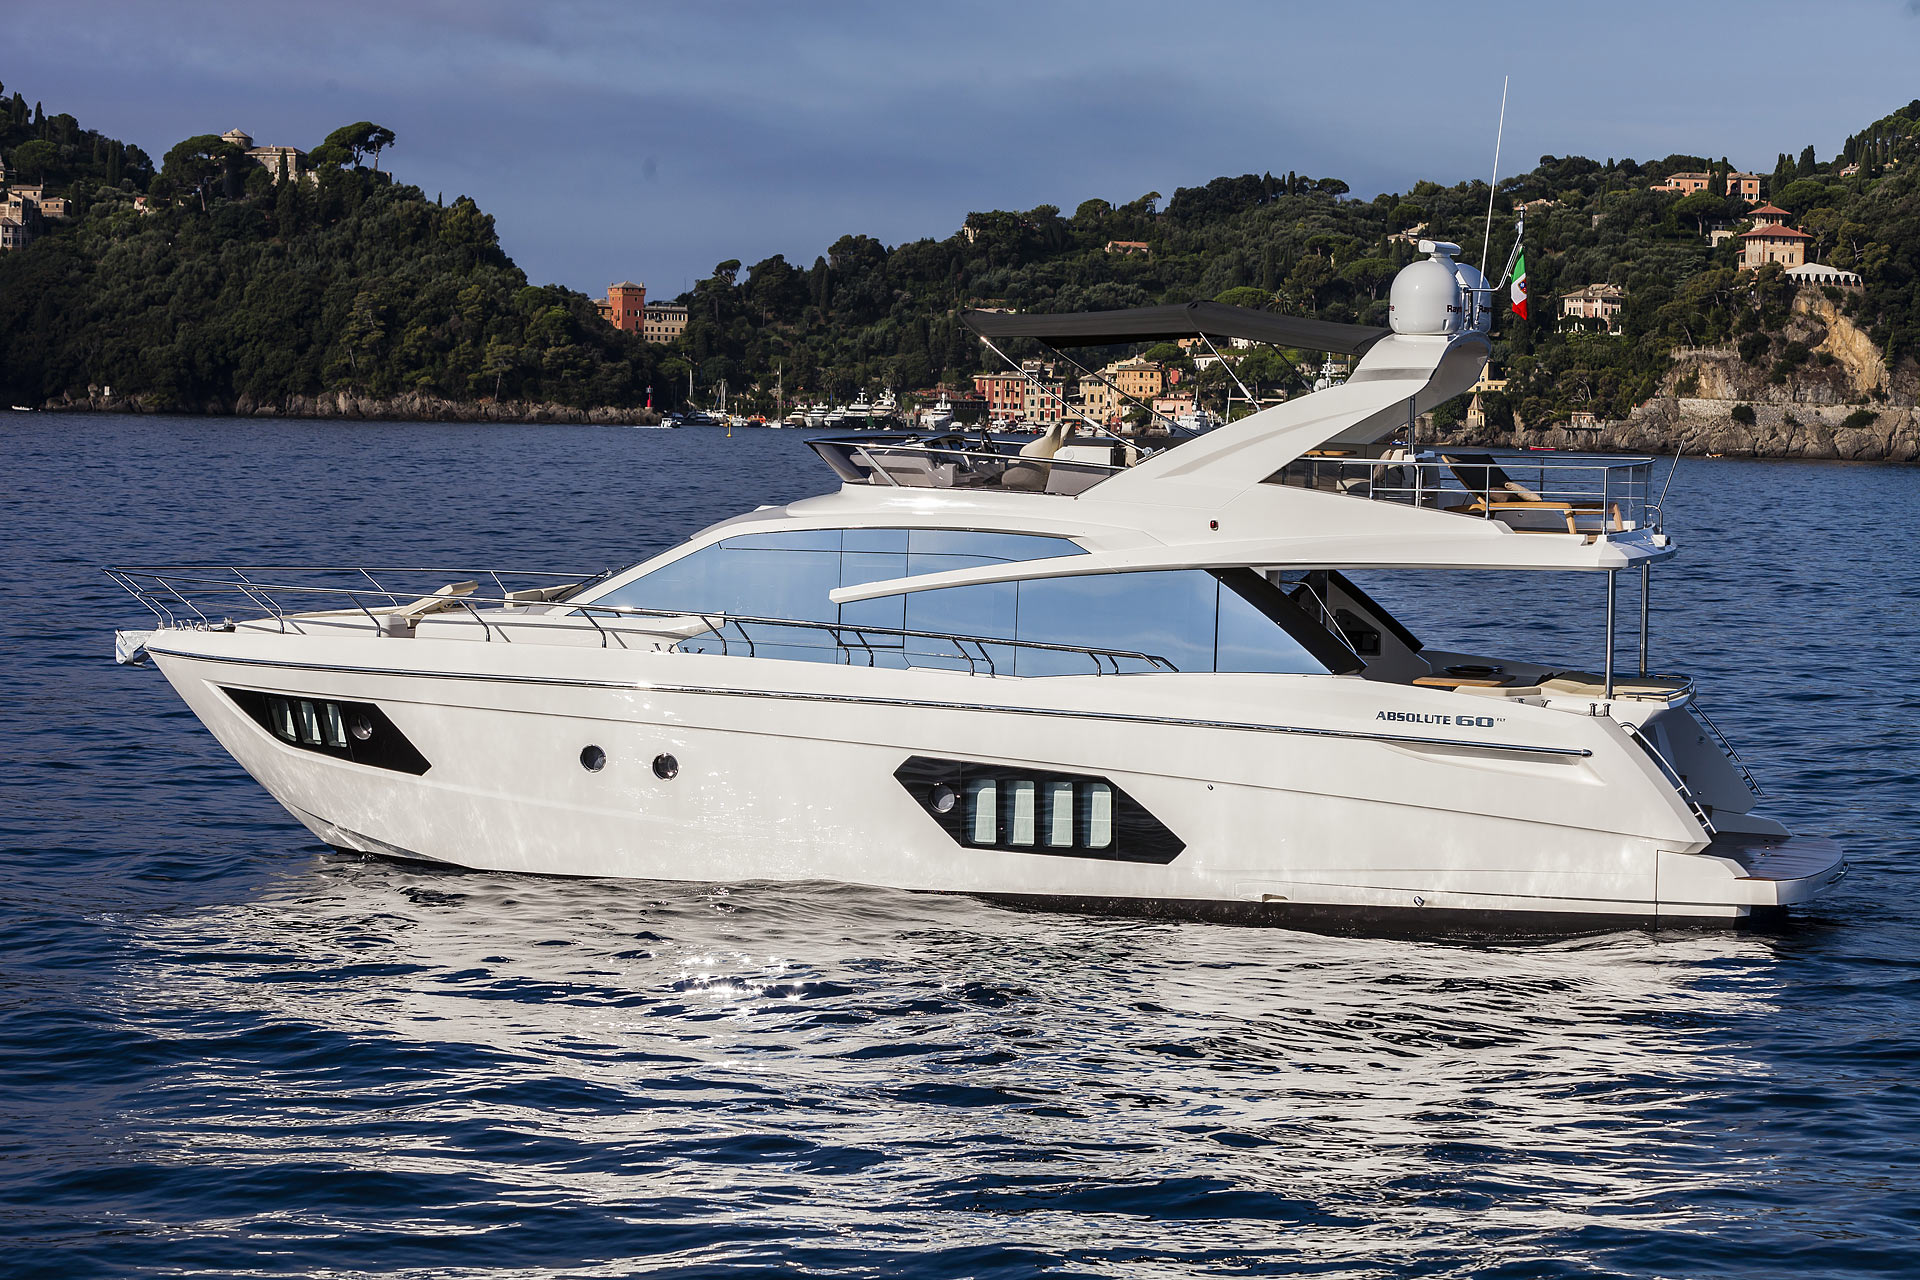 Absolute 60 Fly Luxury Yacht Partial Ownership for sale in Newport Beach